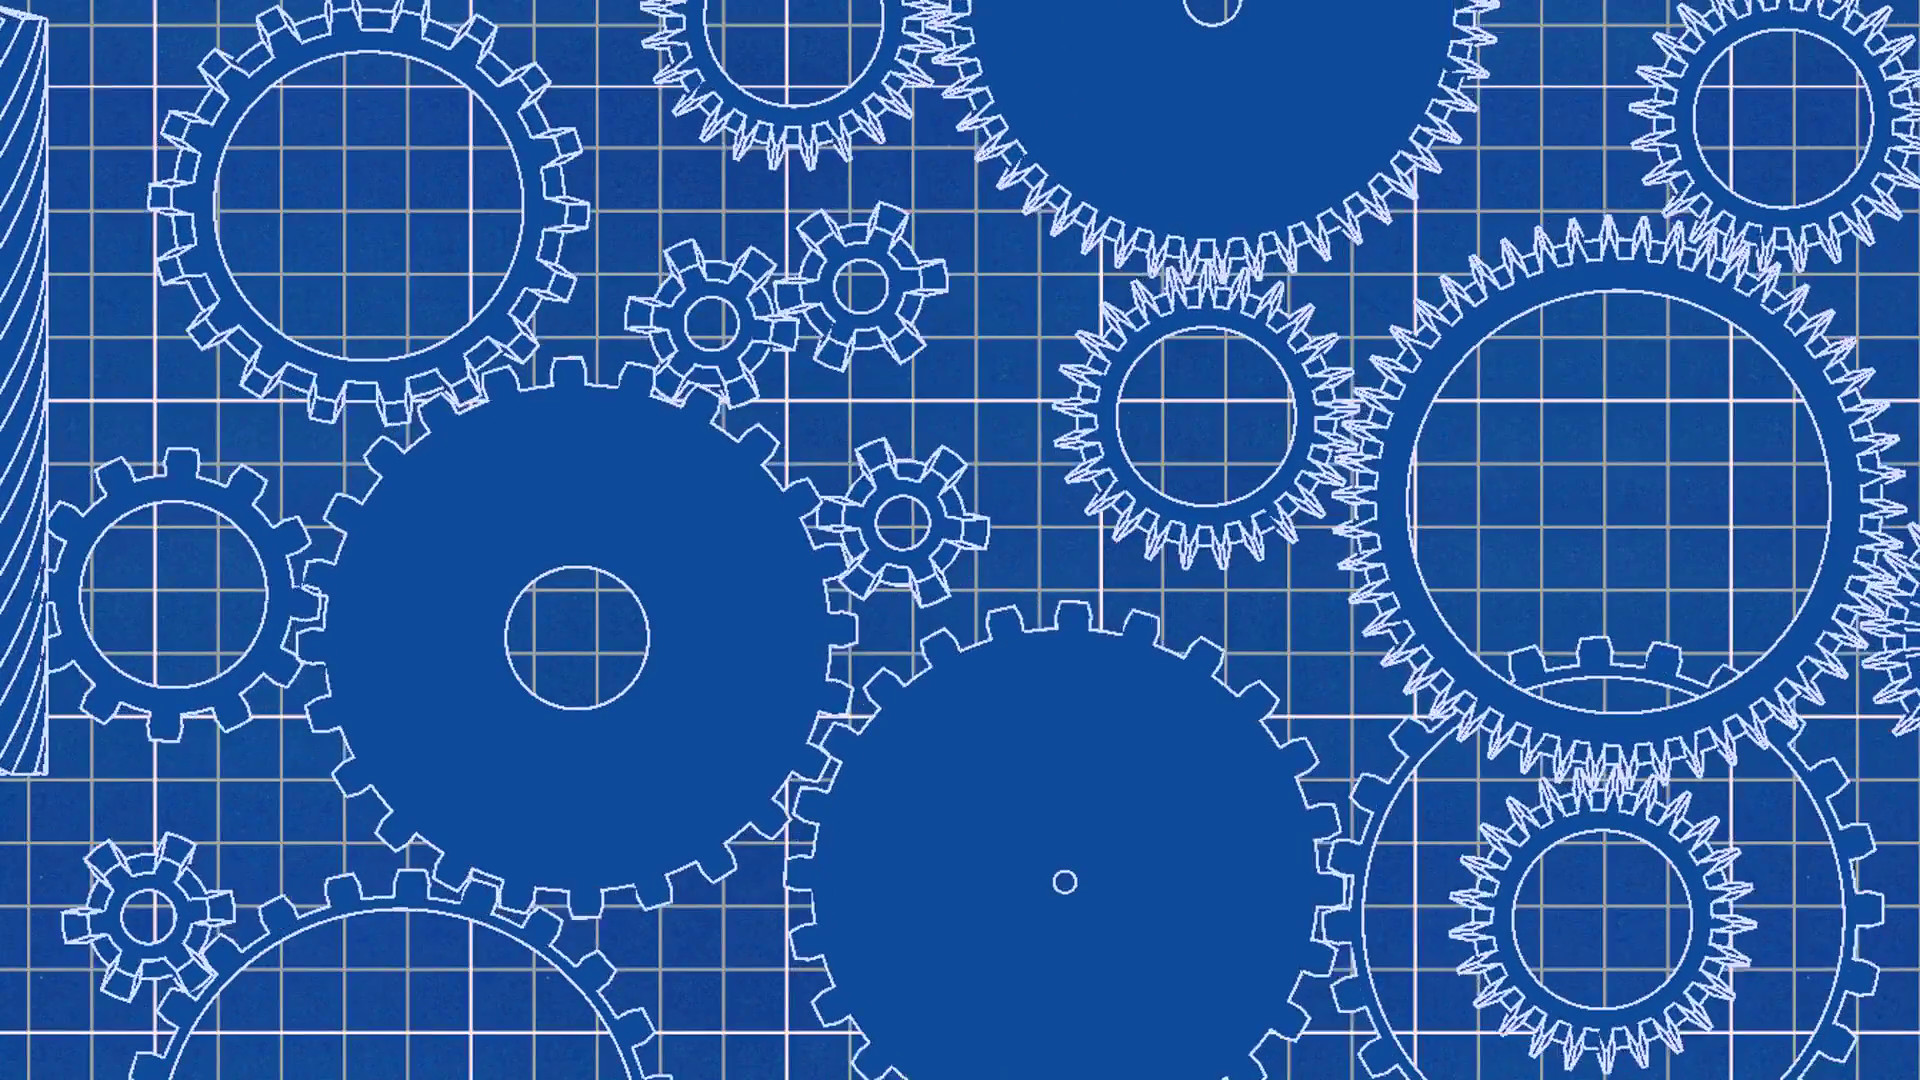 Blue print background 46 images 1920x1080 gear cogs rotating system gearbox blueprint grid mechanism motion background videoblocks malvernweather Choice Image